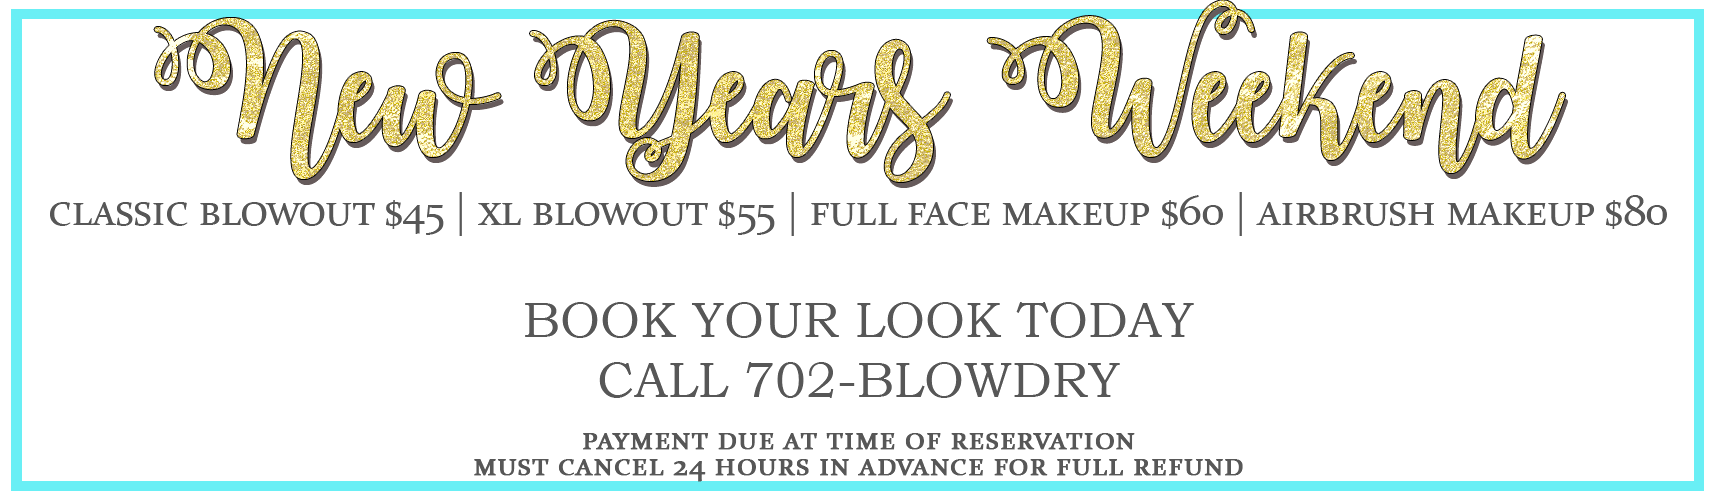 New Years 2016 - Call To Book Now